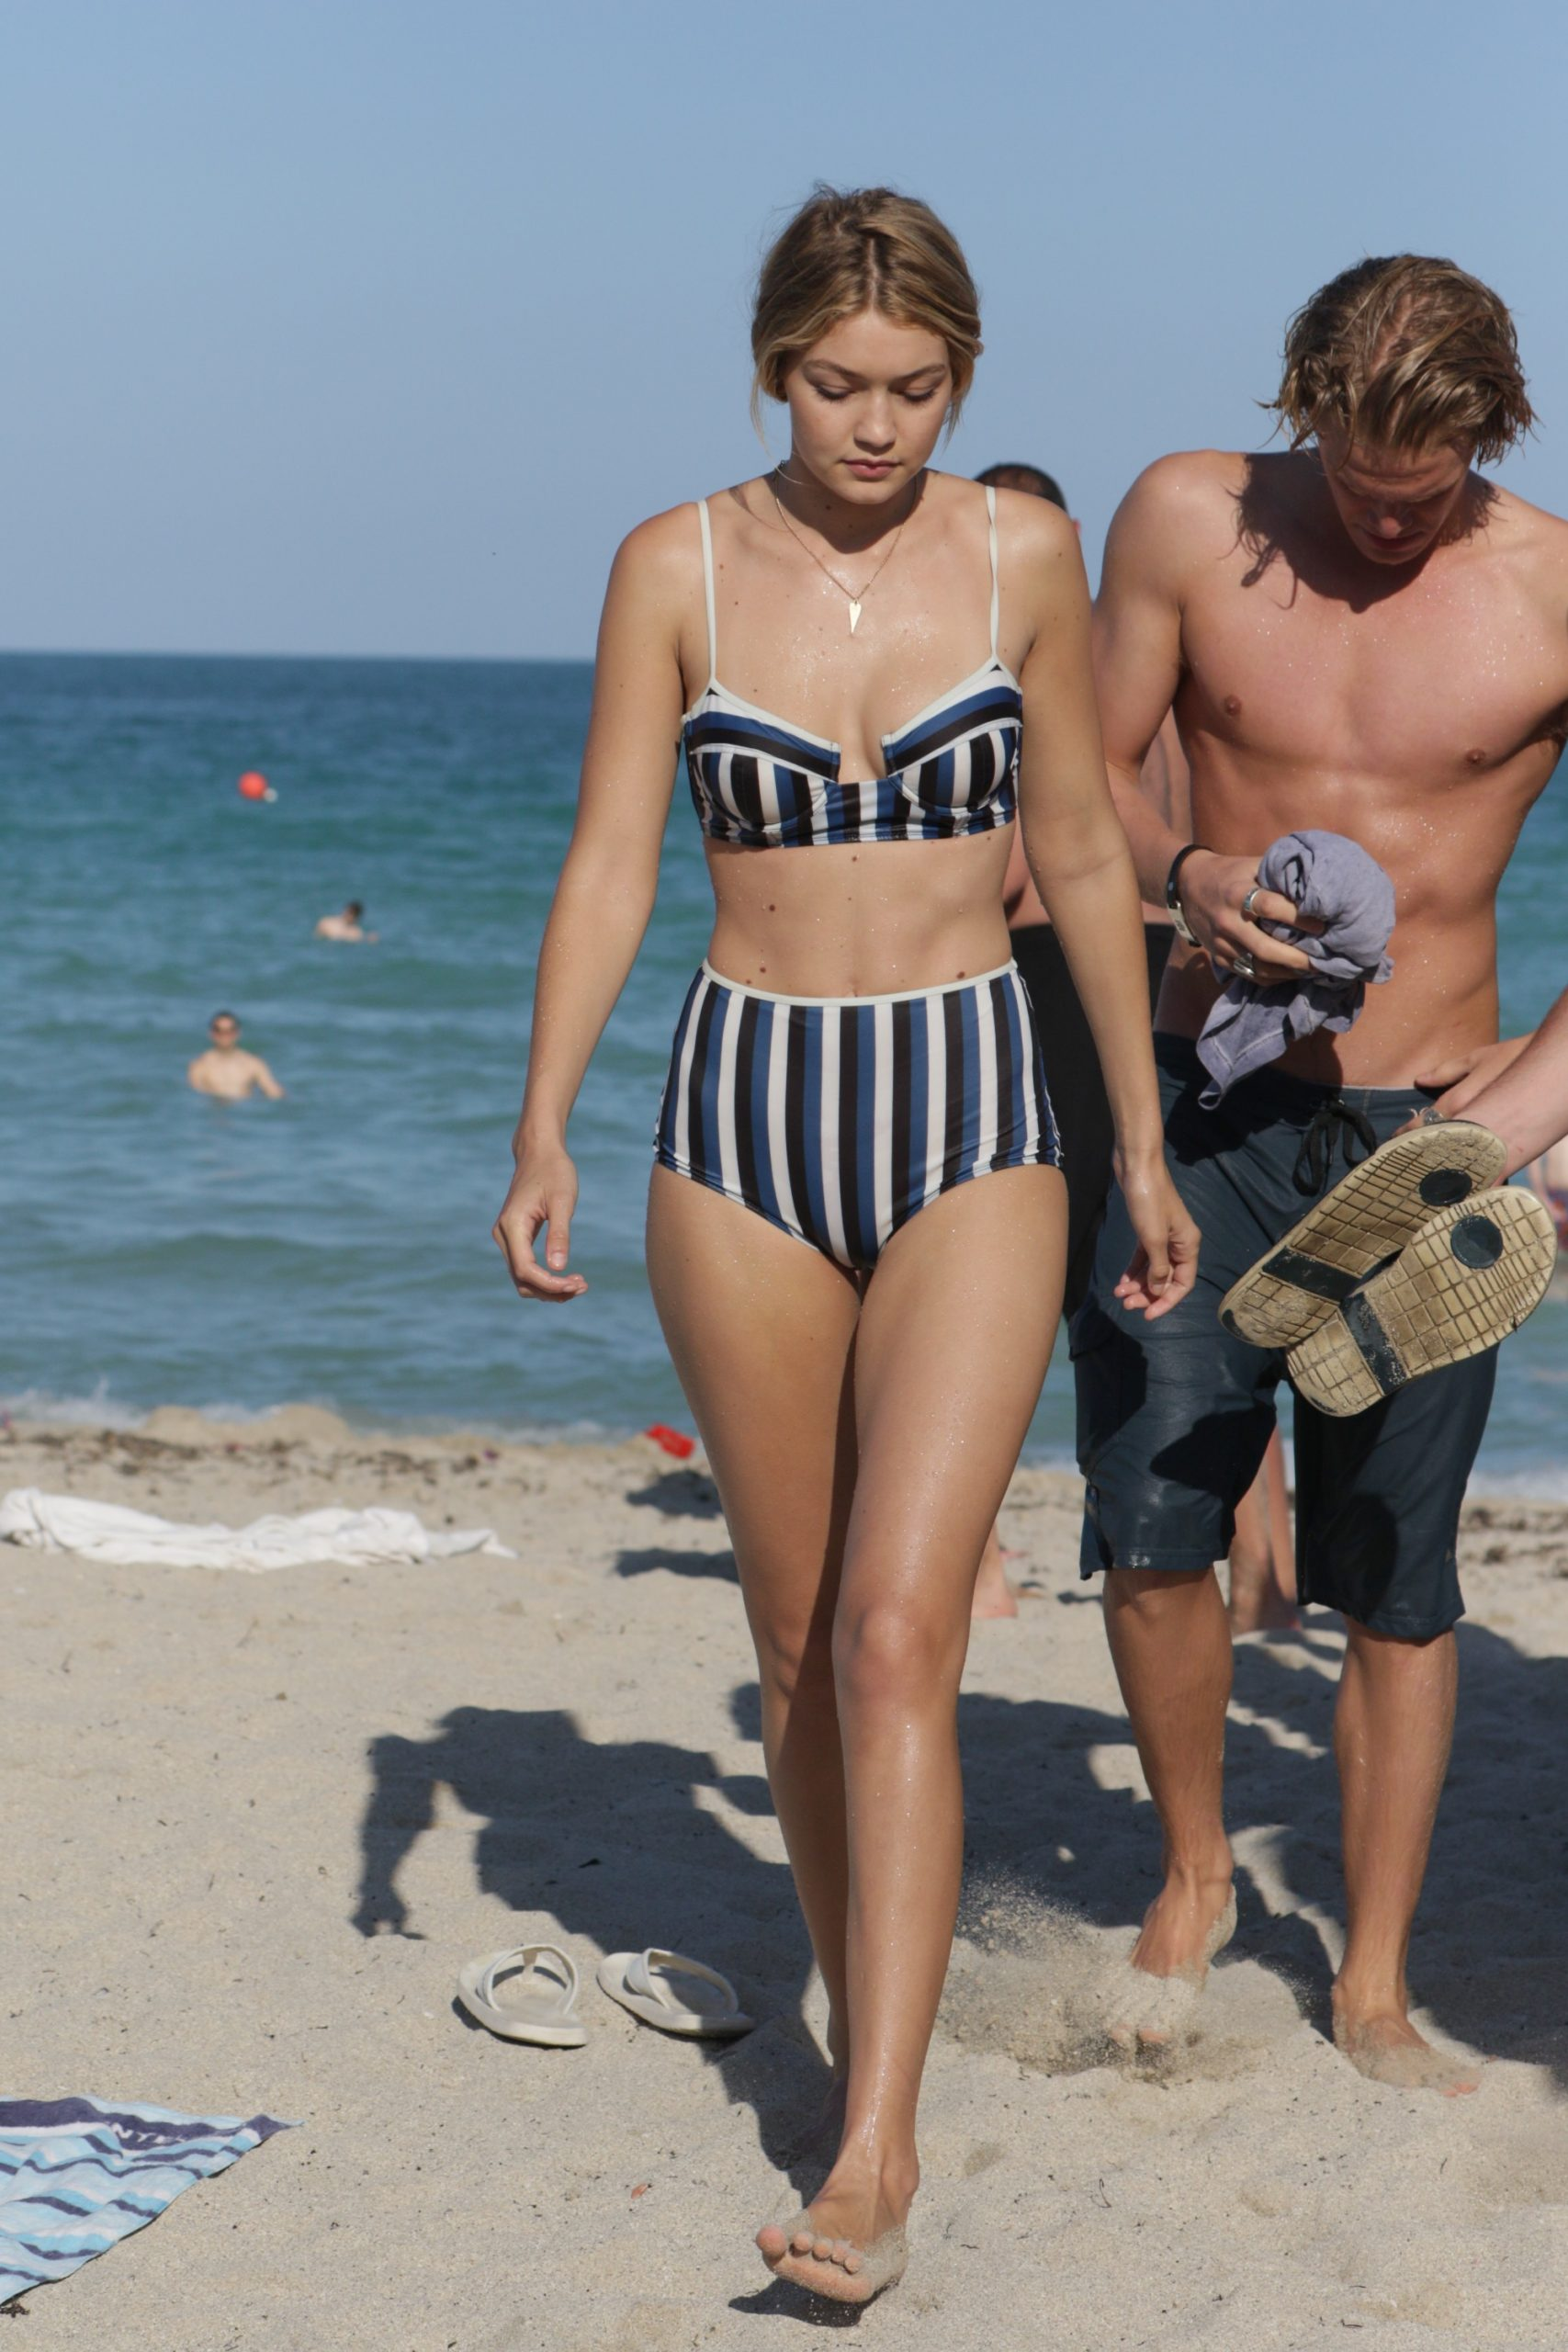 Model Gigi Hadid walks along the beach in a striped two-piece swimsuit